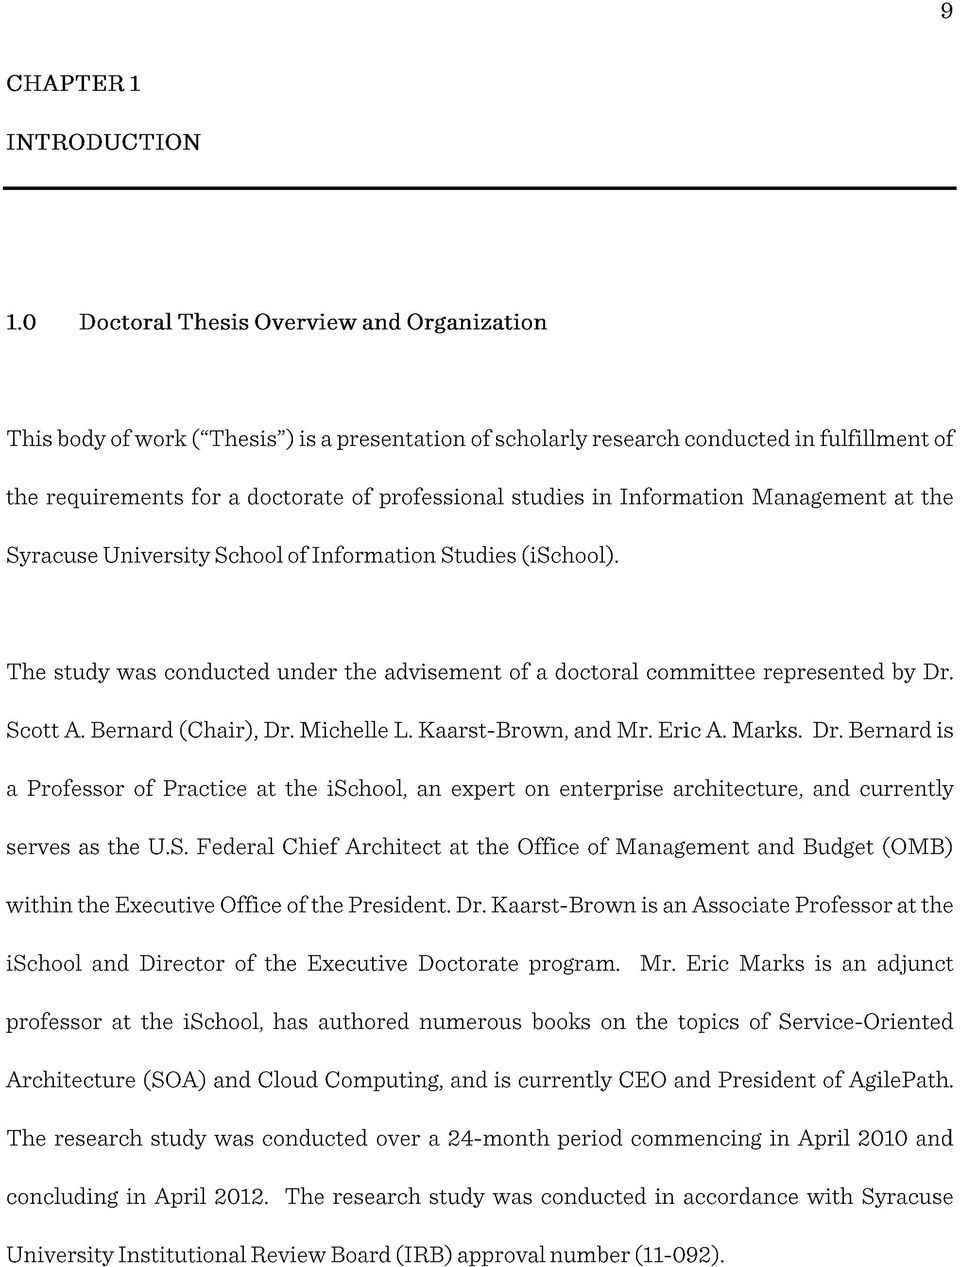 in Information Management at the Syracuse University School of Information Studies (ischool). The study was conducted under the advisement of a doctoral committee represented by Dr. Scott A.